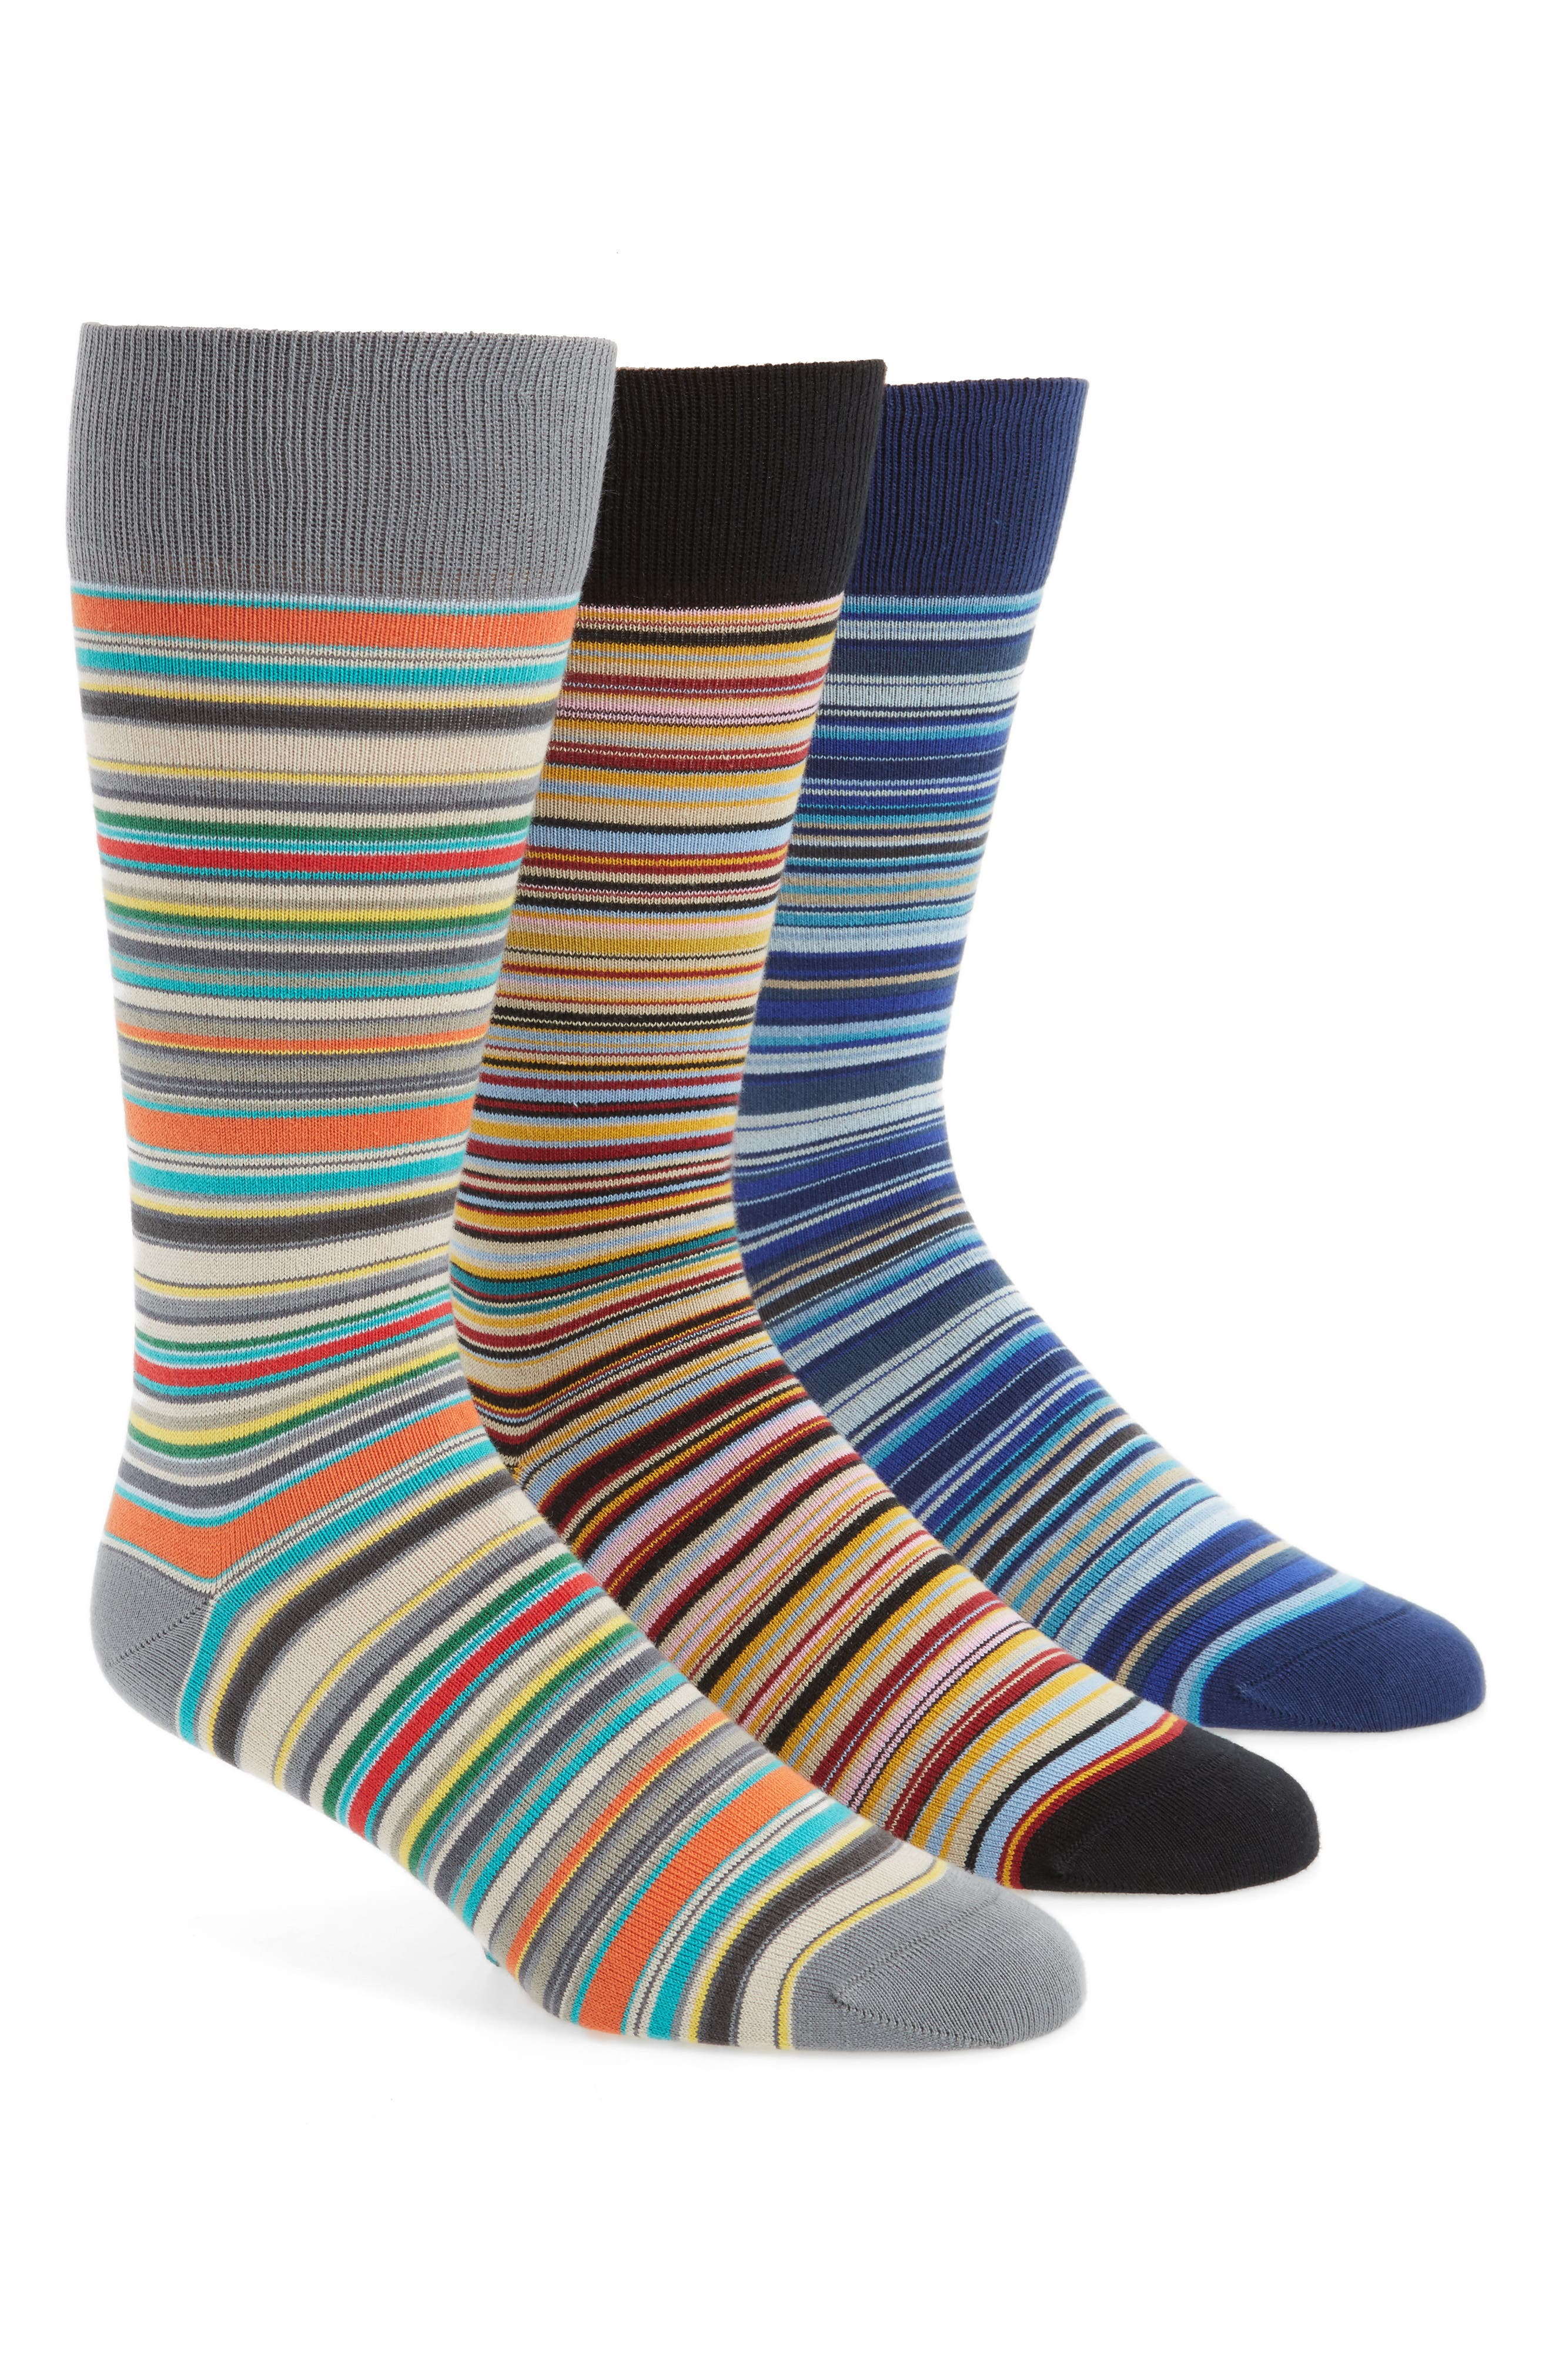 Alternate Image 1 Selected - Paul Smith 3-Pack Mixed Pattern Socks ($90 Value)